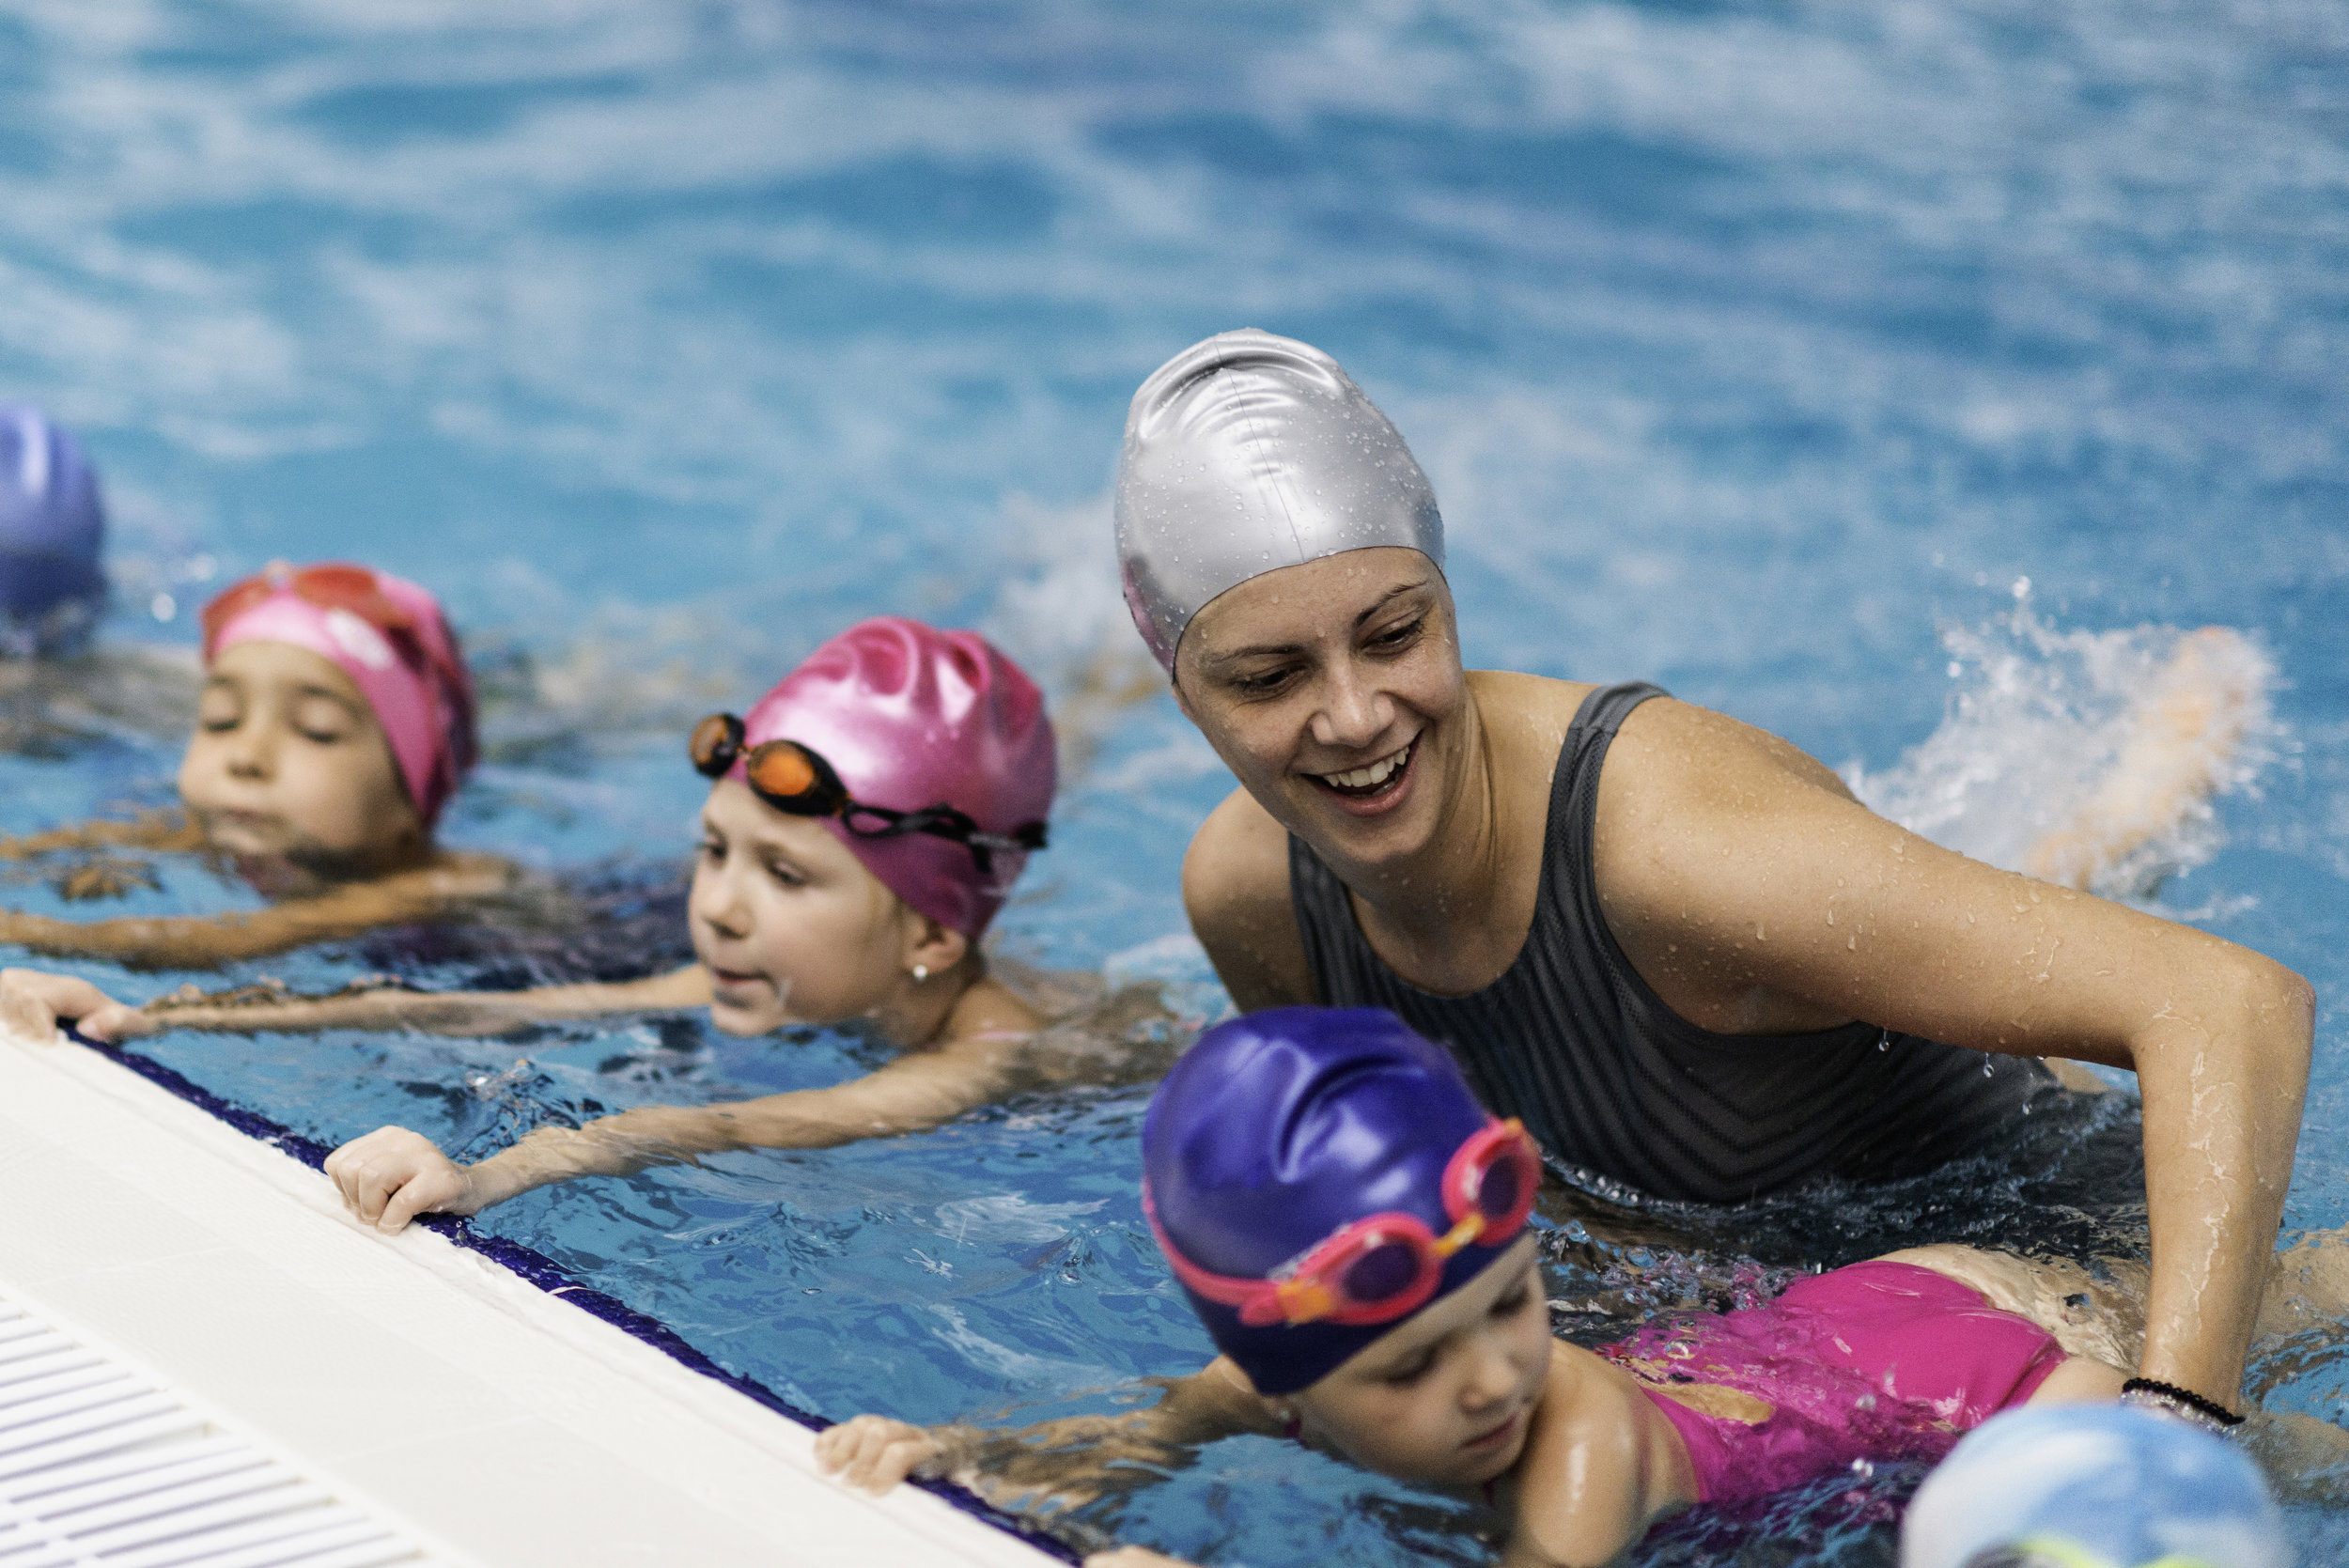 3991743-Child-Swimming-Stock-Photo.jpg